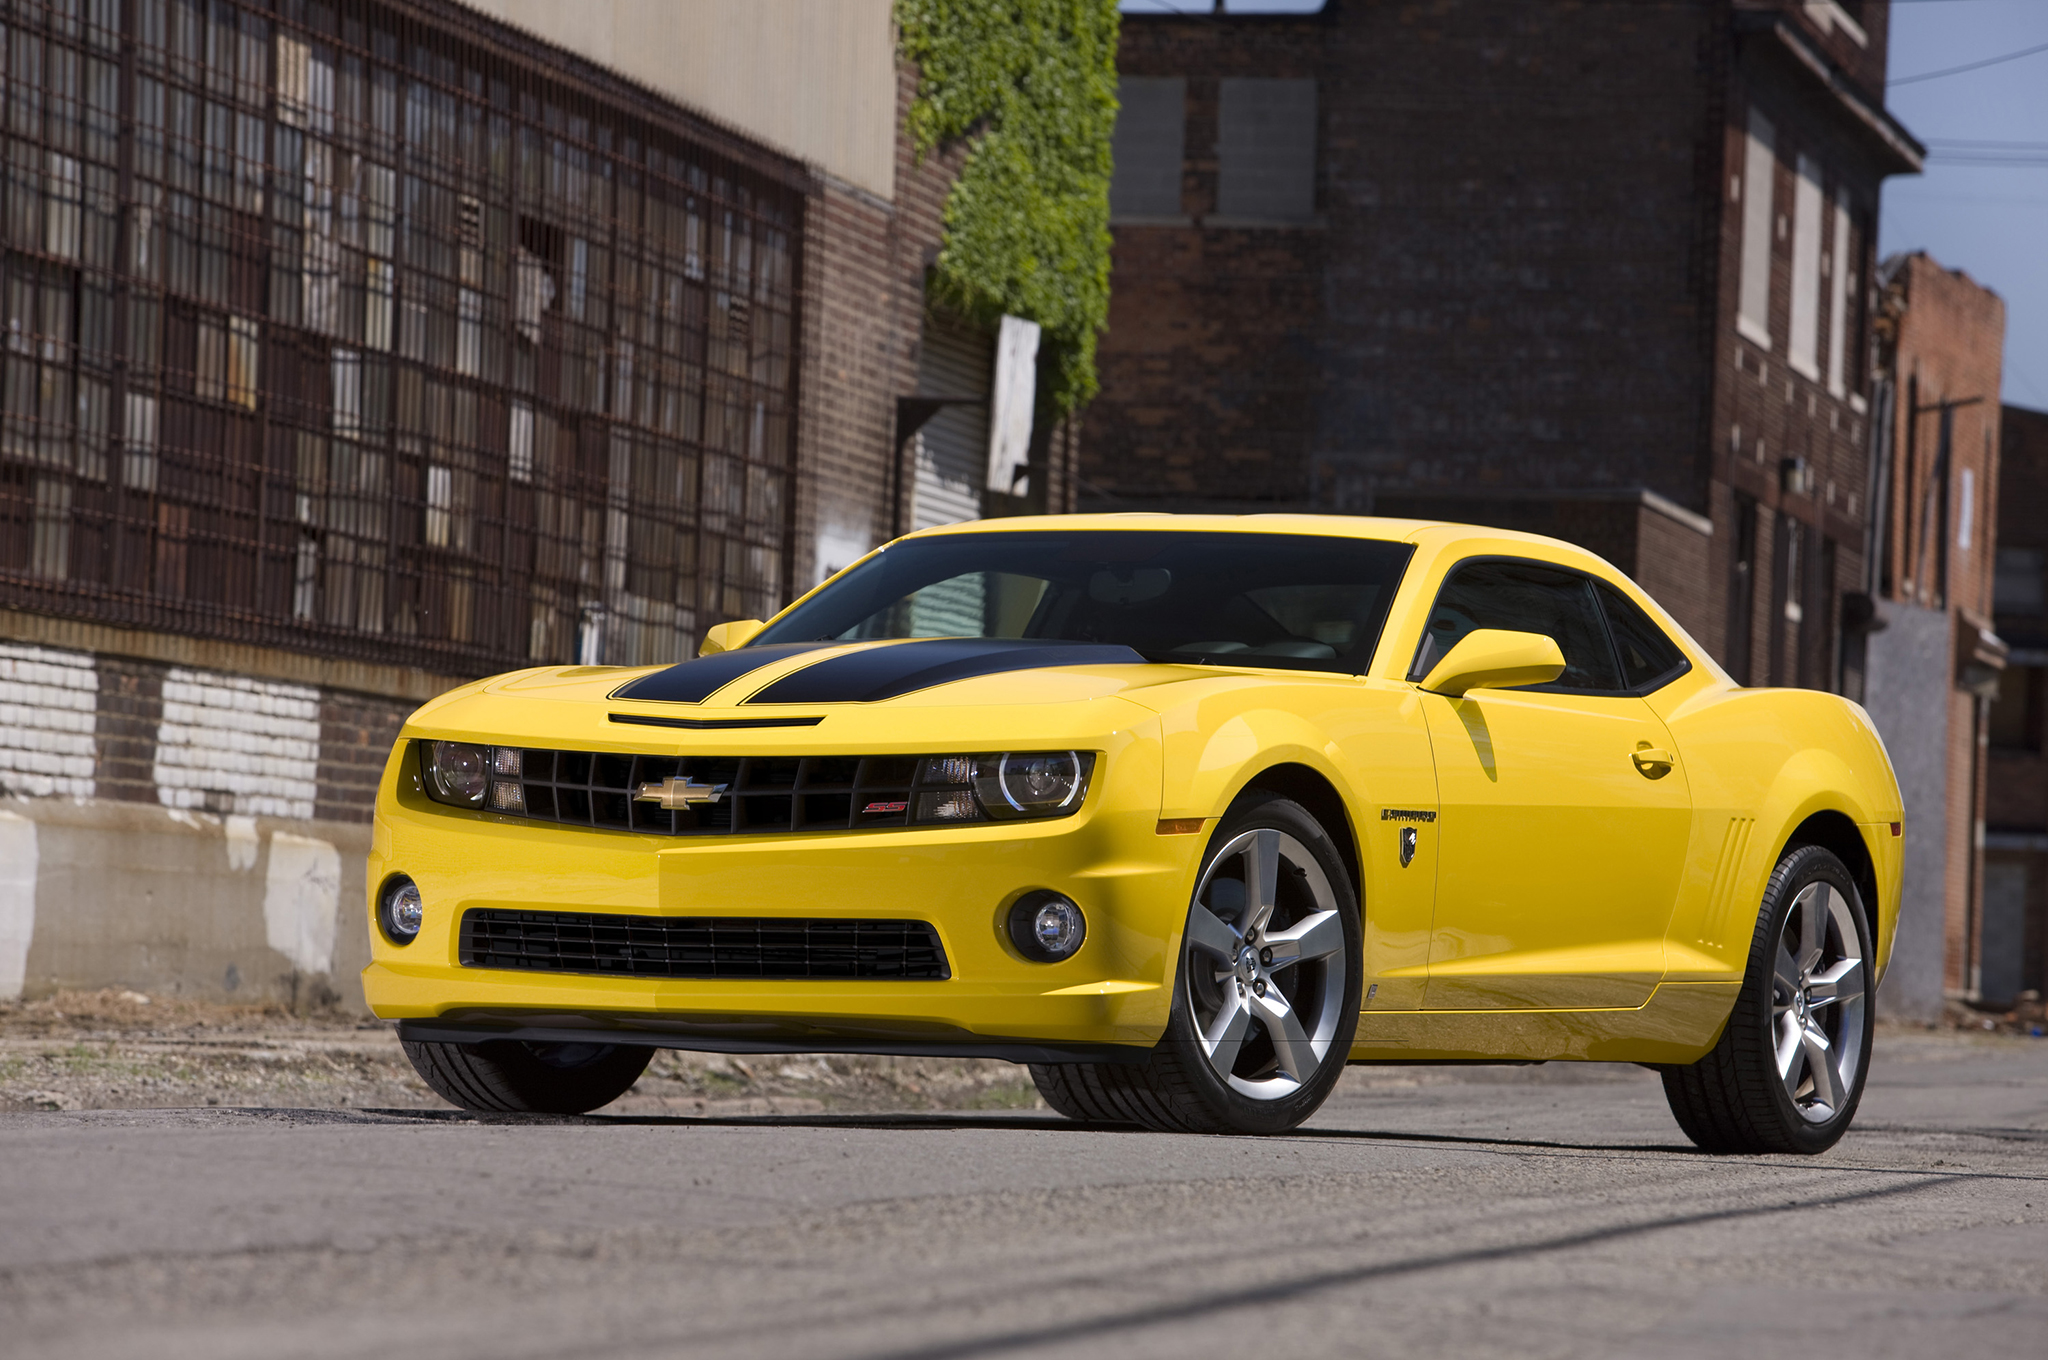 The Gen 5 Camaro was a sales and cultural phenomenon, helped in no small part by its role in the Transformers movies. Chevrolet even built a Transformers Edition in 2010.